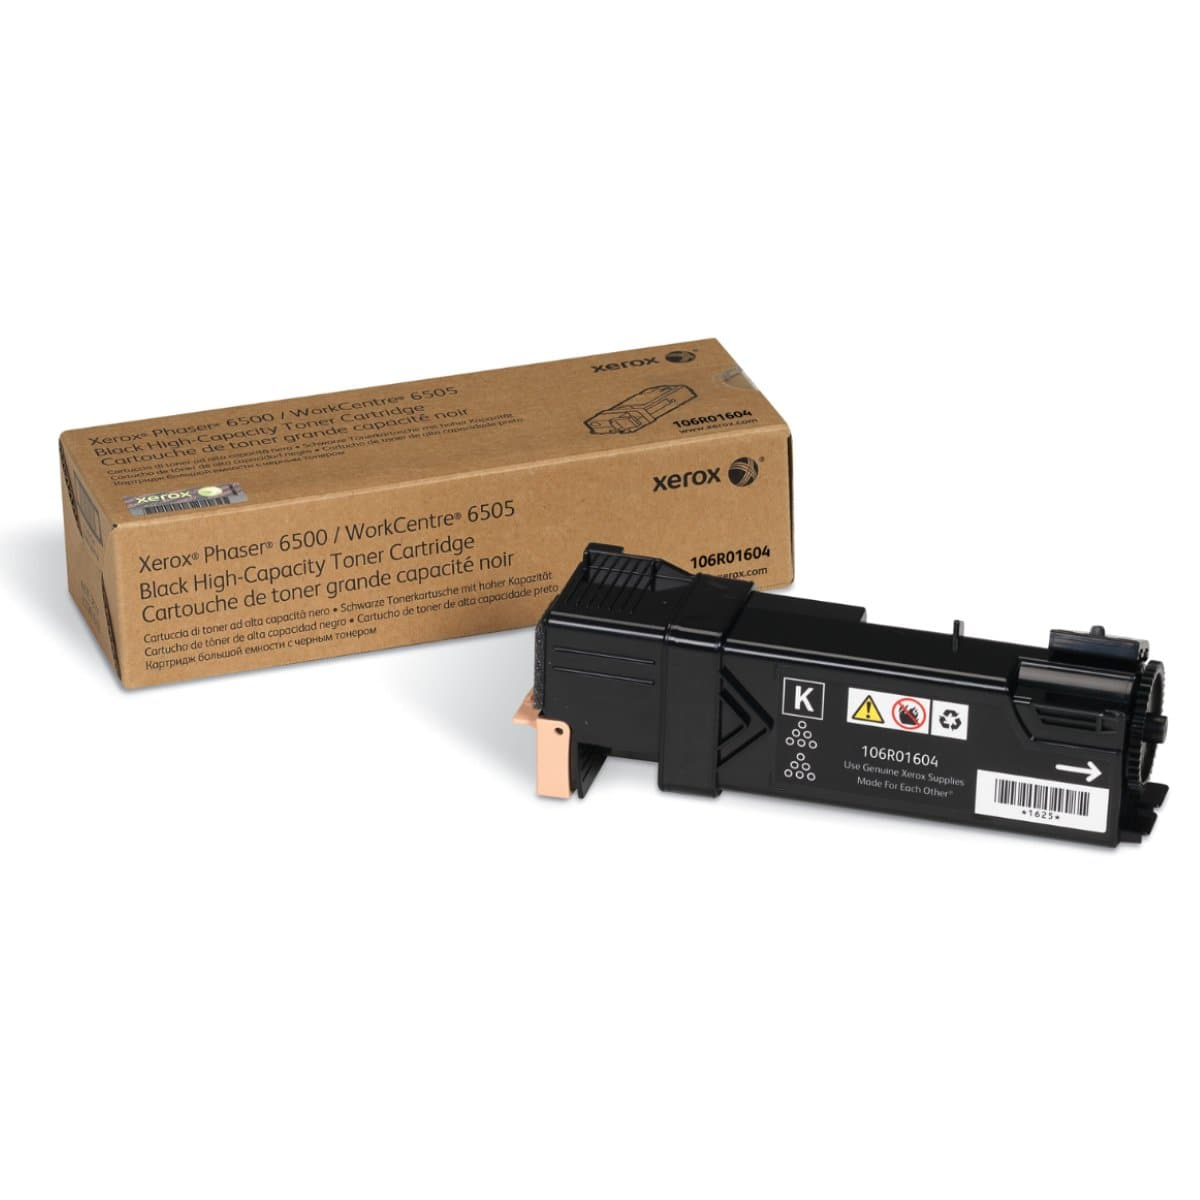 Xerox 106R01604 Black Toner Cartridge